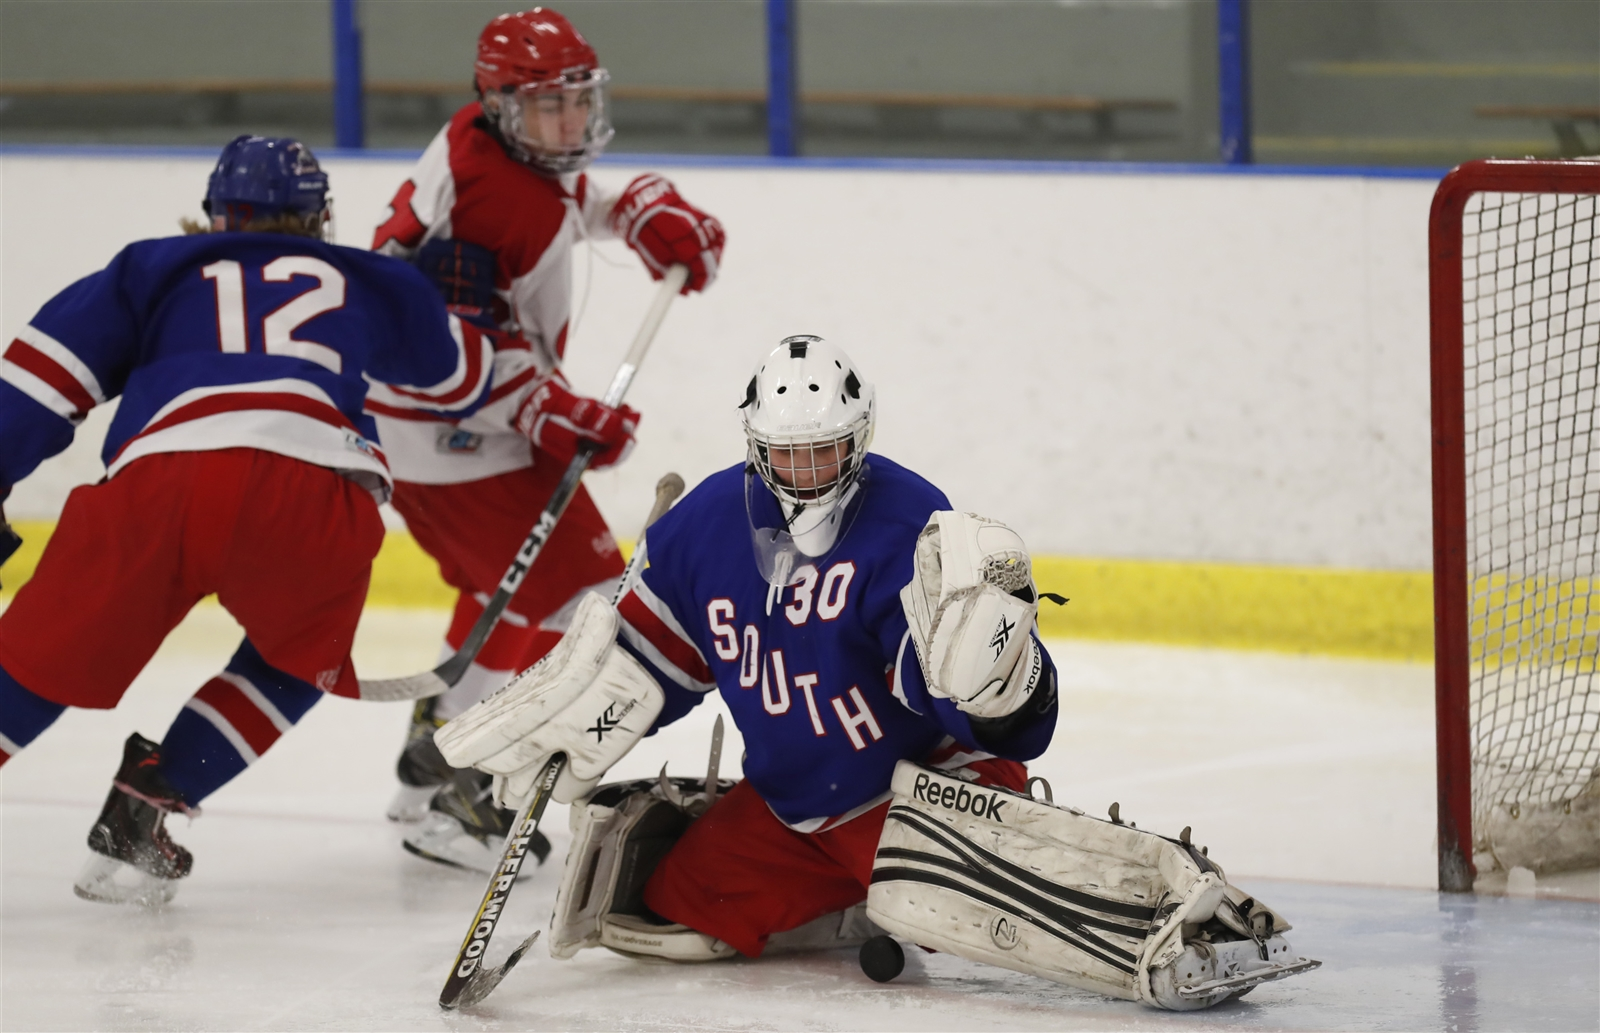 Williamsville South goaltender Jake Kantor makes a save on St. Francis during first period action Saturday. (Harry Scull Jr. / Buffalo News).